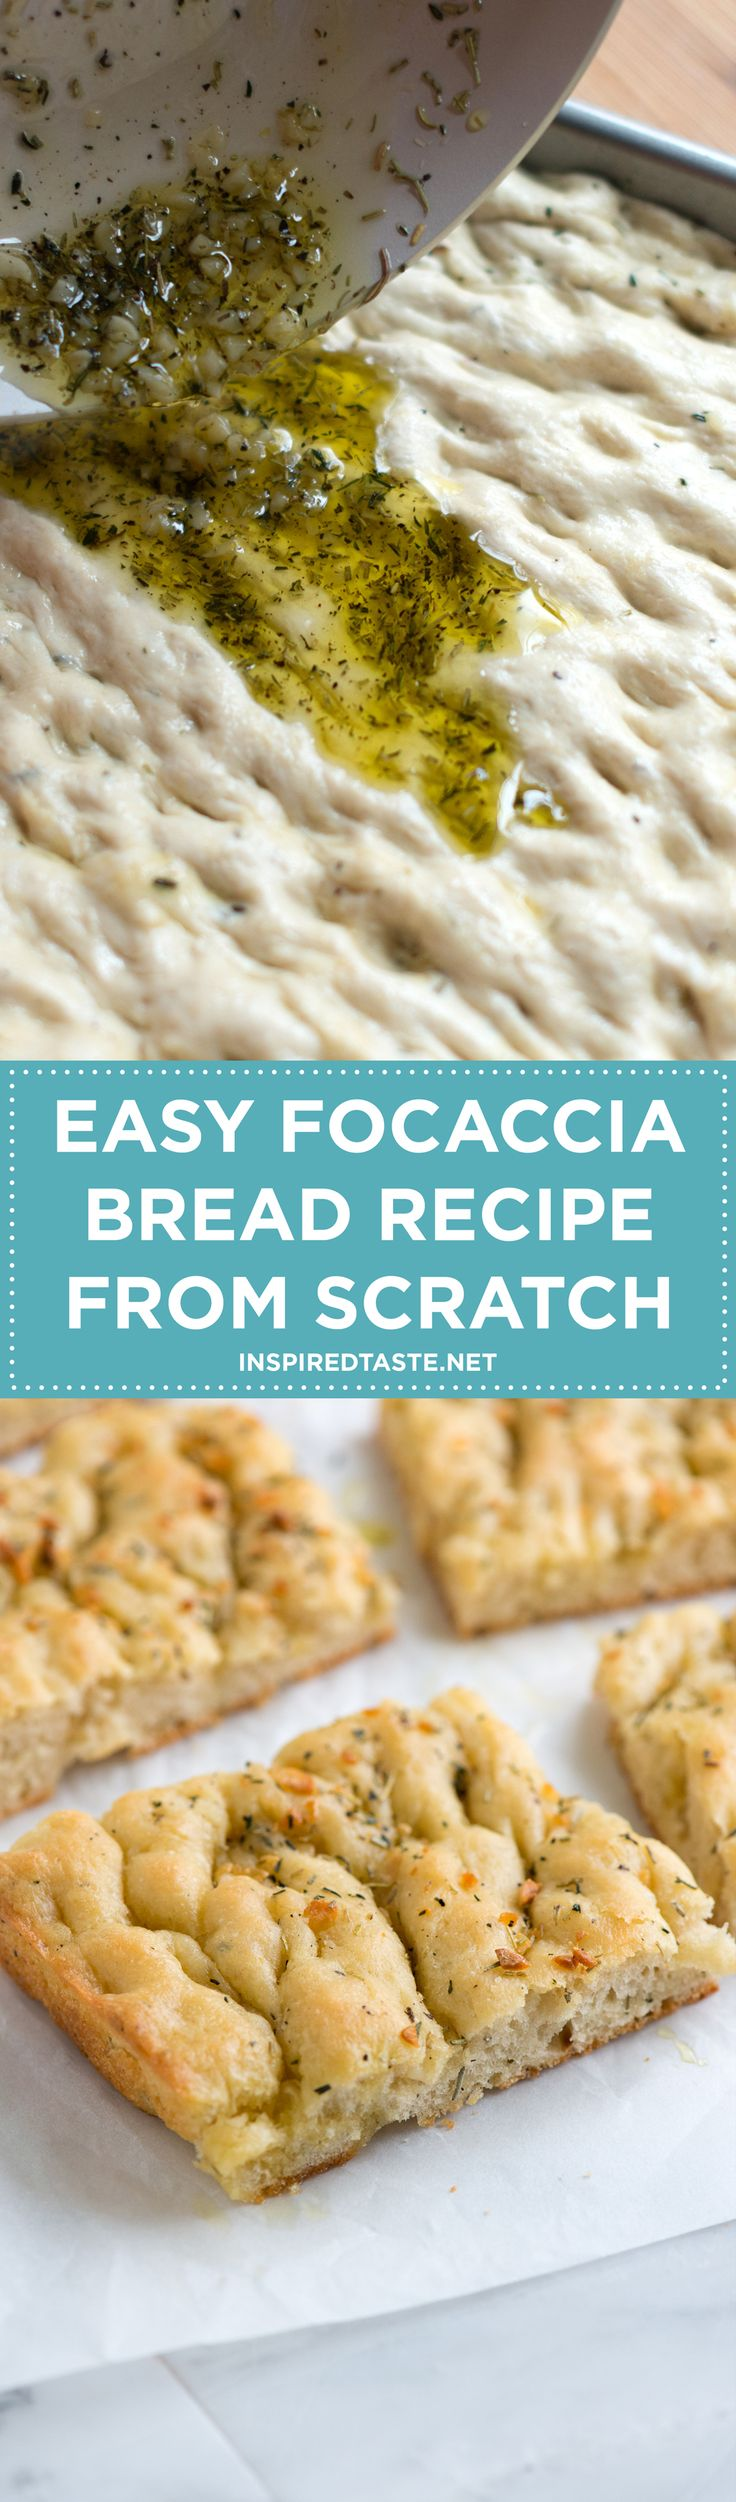 Our focaccia bread recipe is very simple to make – no fancy equipment is needed at all. If you want to make your own bread, this is where to start! #bread #focaccia